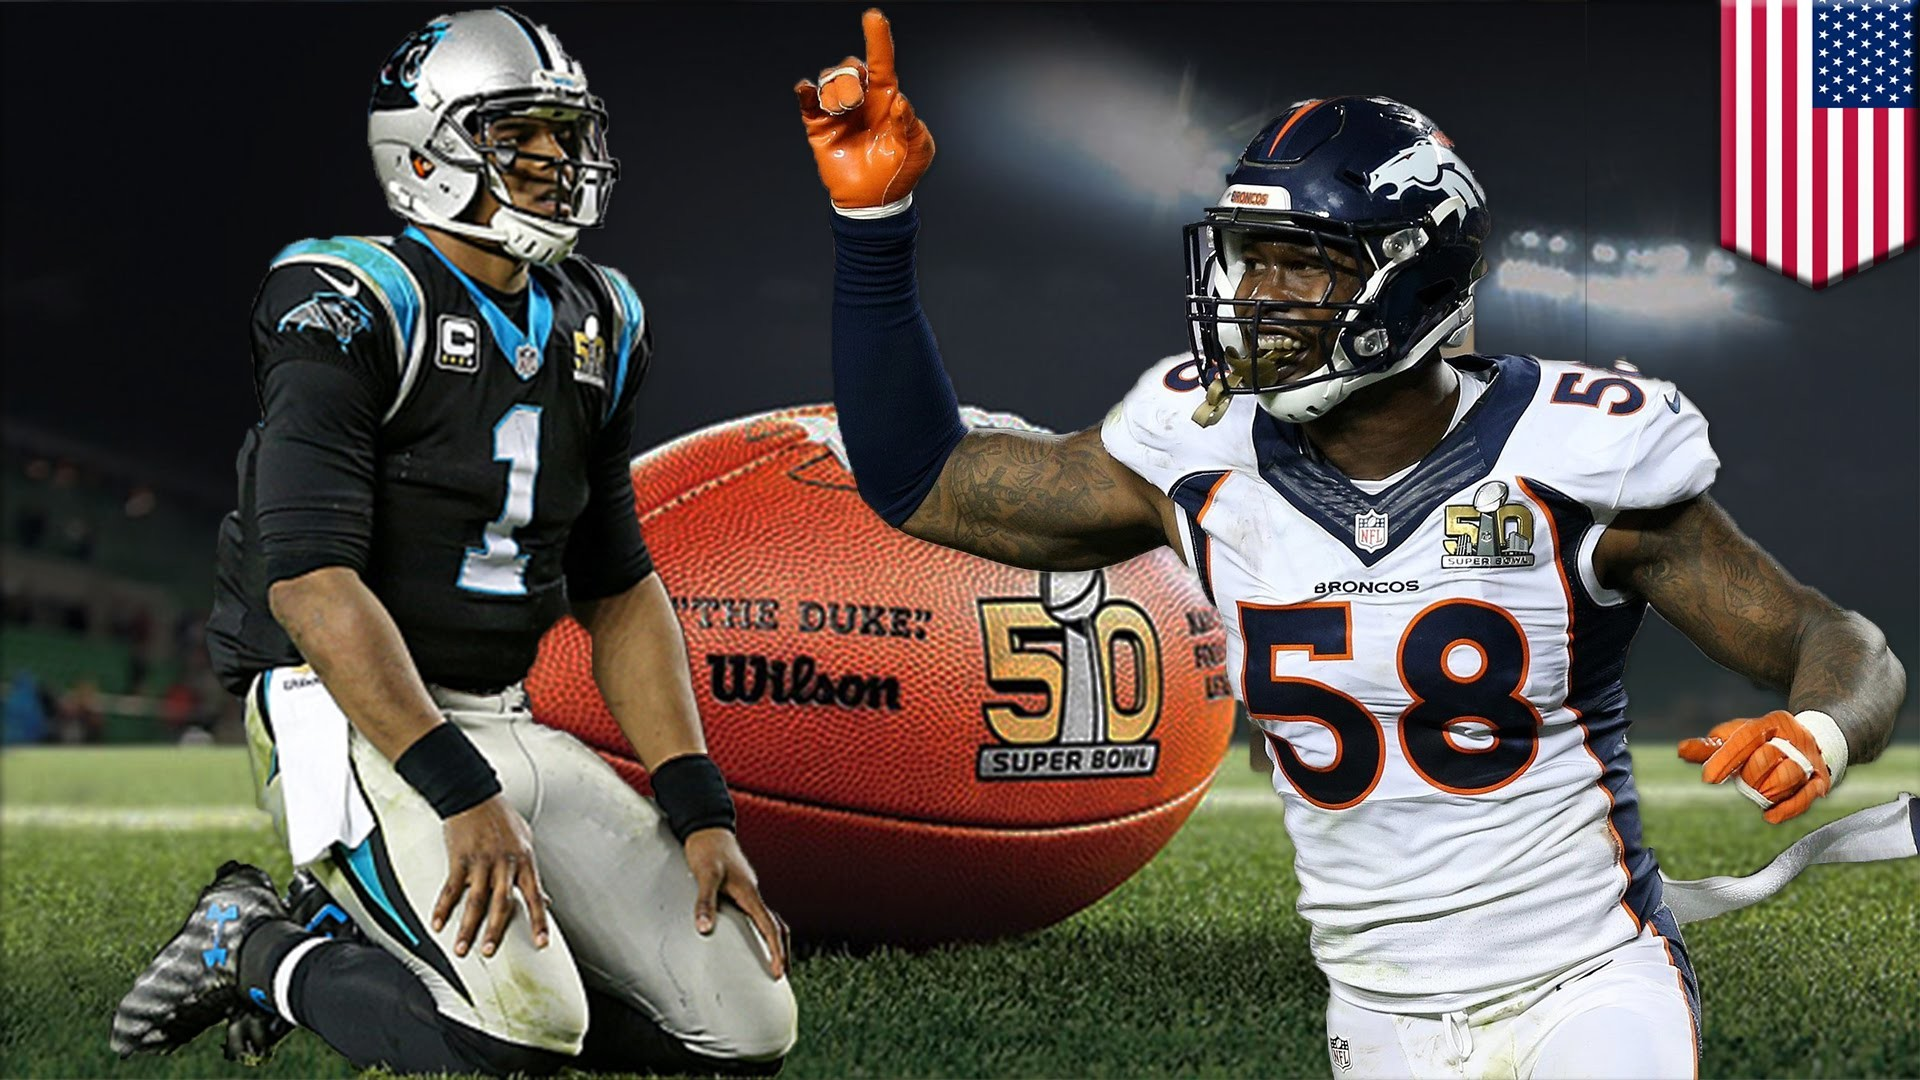 1920x1080 Broncos win Super Bowl 50: Denver D annihilates Cam and Panthers for 24-10  win - YouTube